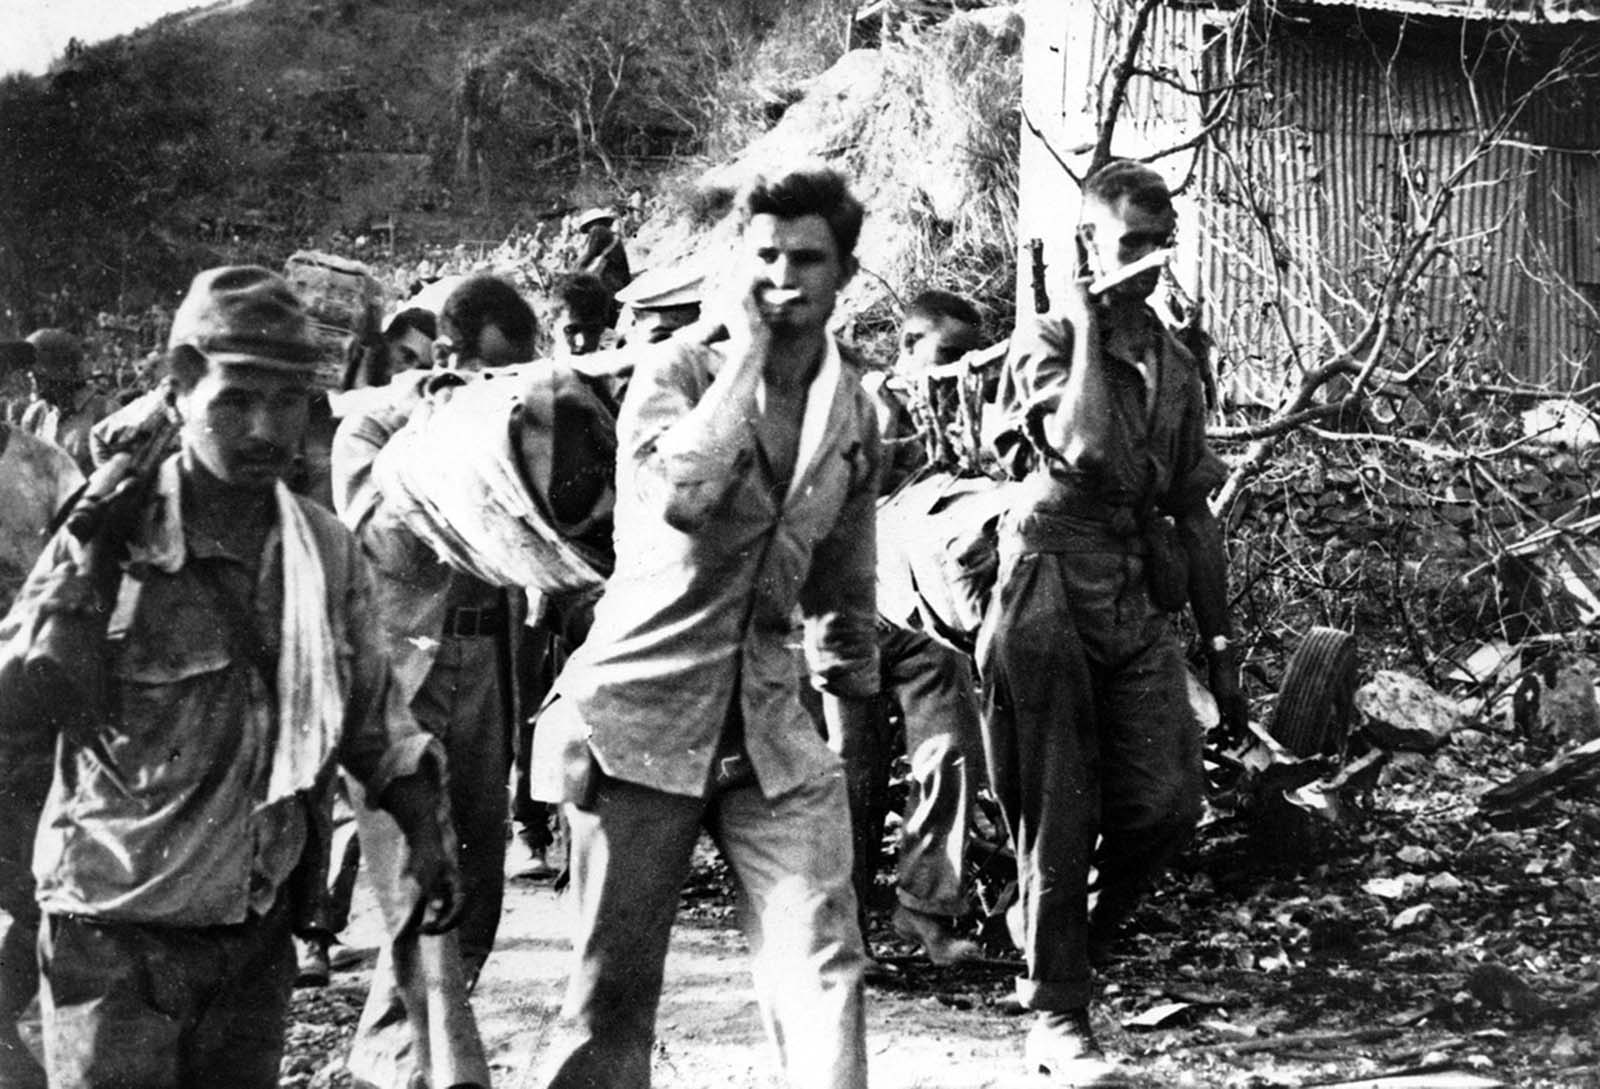 American prisoners of war carry their wounded and sick during the Bataan Death March in April of 1942. This photo was taken from the Japanese during their three year occupation of the Philippines.